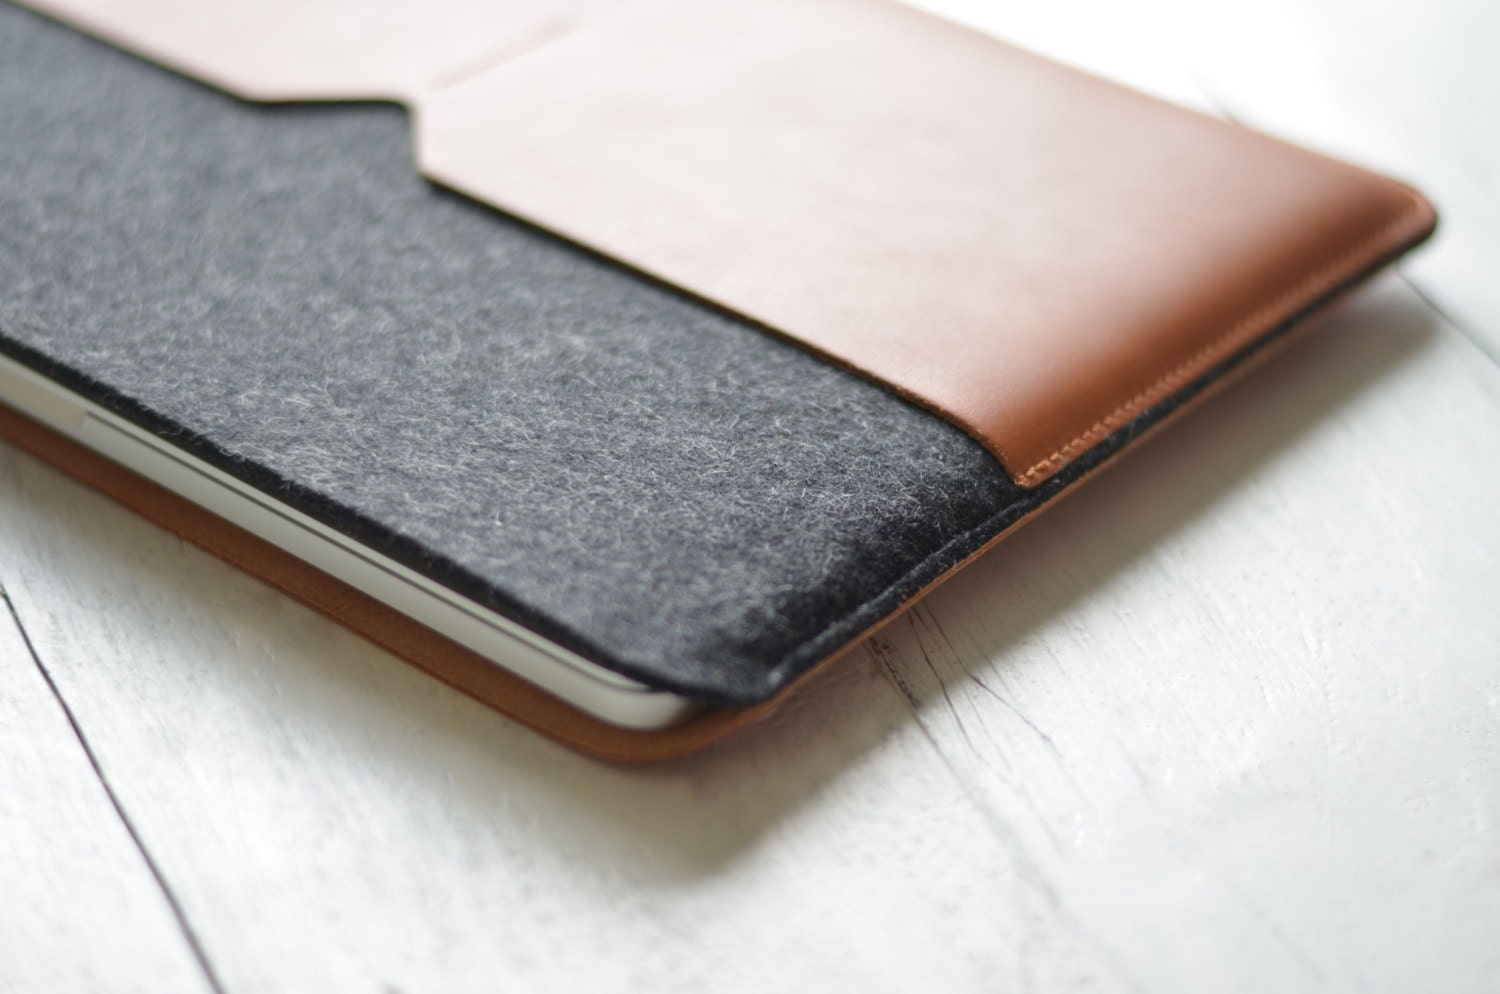 13 MacBook Air  Black Edition Leather Sleeve Case and Wool Felt Laptop Cover Handmade